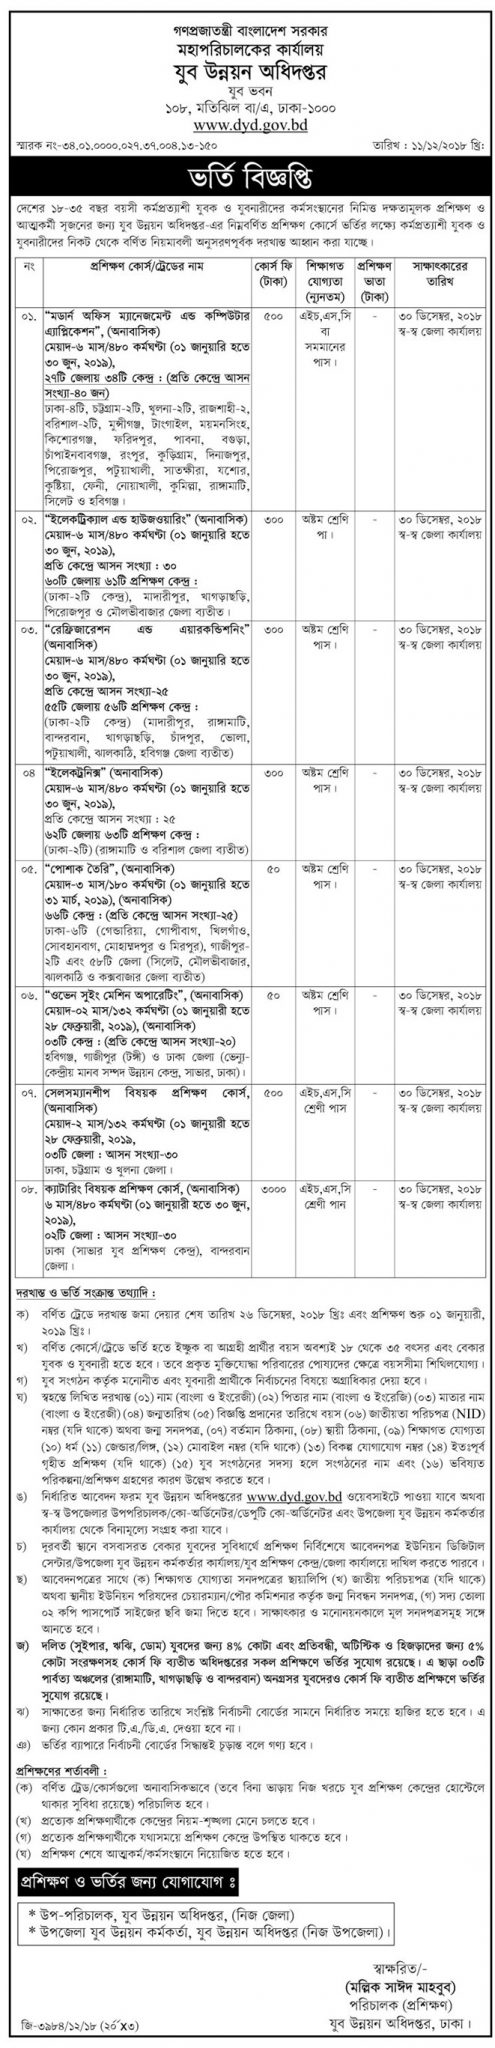 Department Of Youth Development Admission Notice 2018